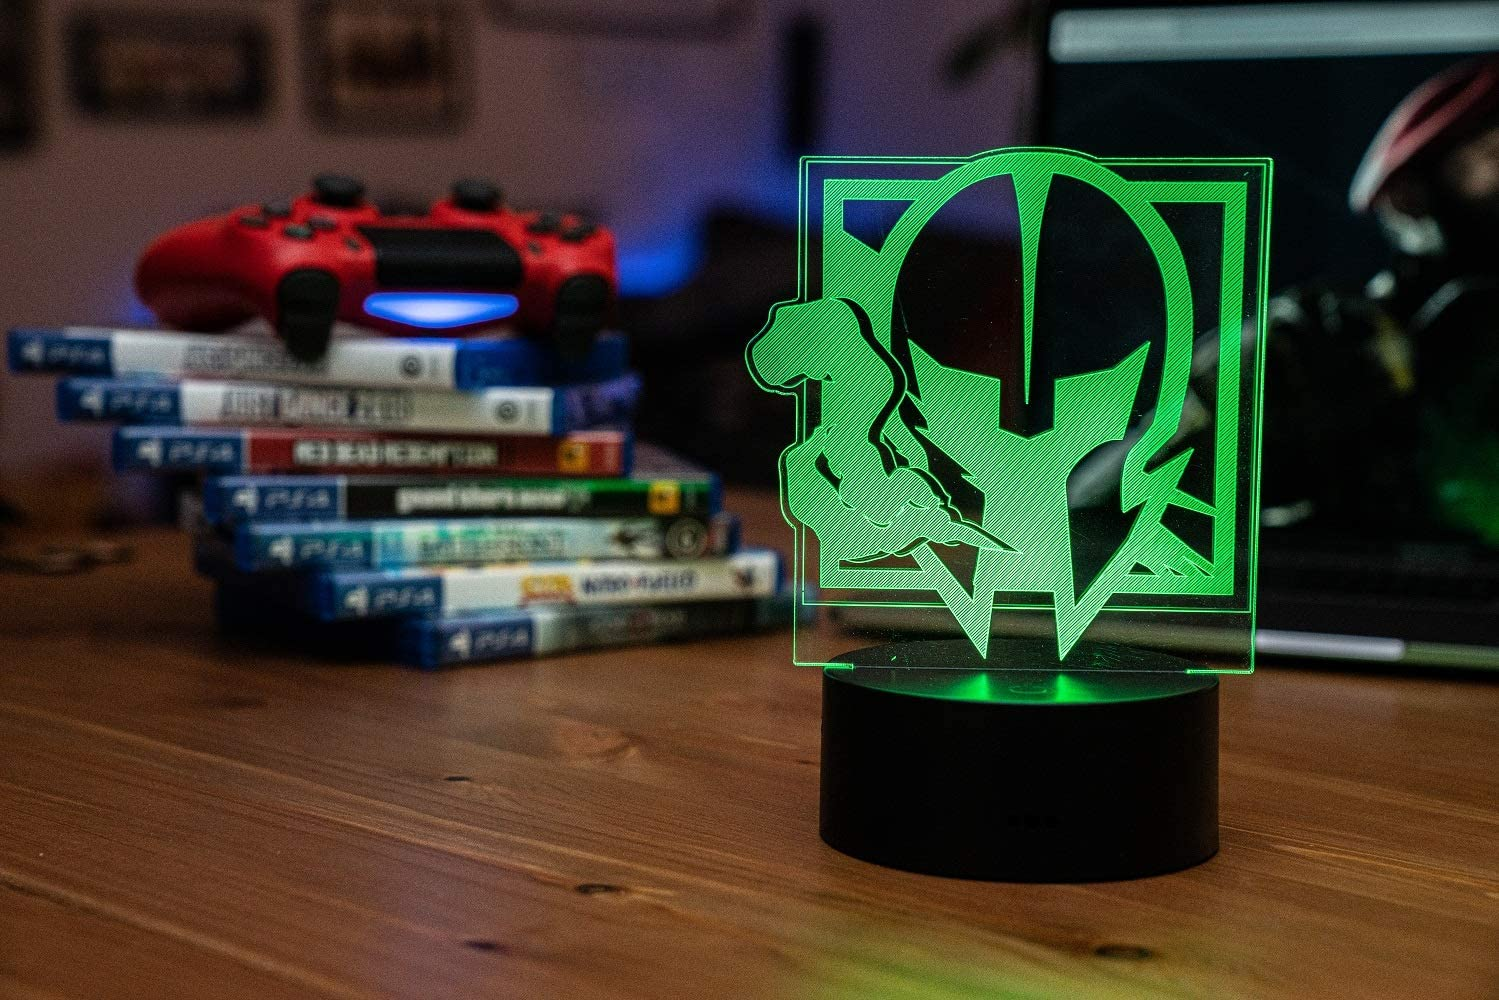 Six Siege LED Lamp - Maestro Operator - Rainbow Six Siege Decor for The Bedroom or Gaming Studio - Color Changing LED Nightlight Great for Cosplay Photoshoots with Any R6 Character